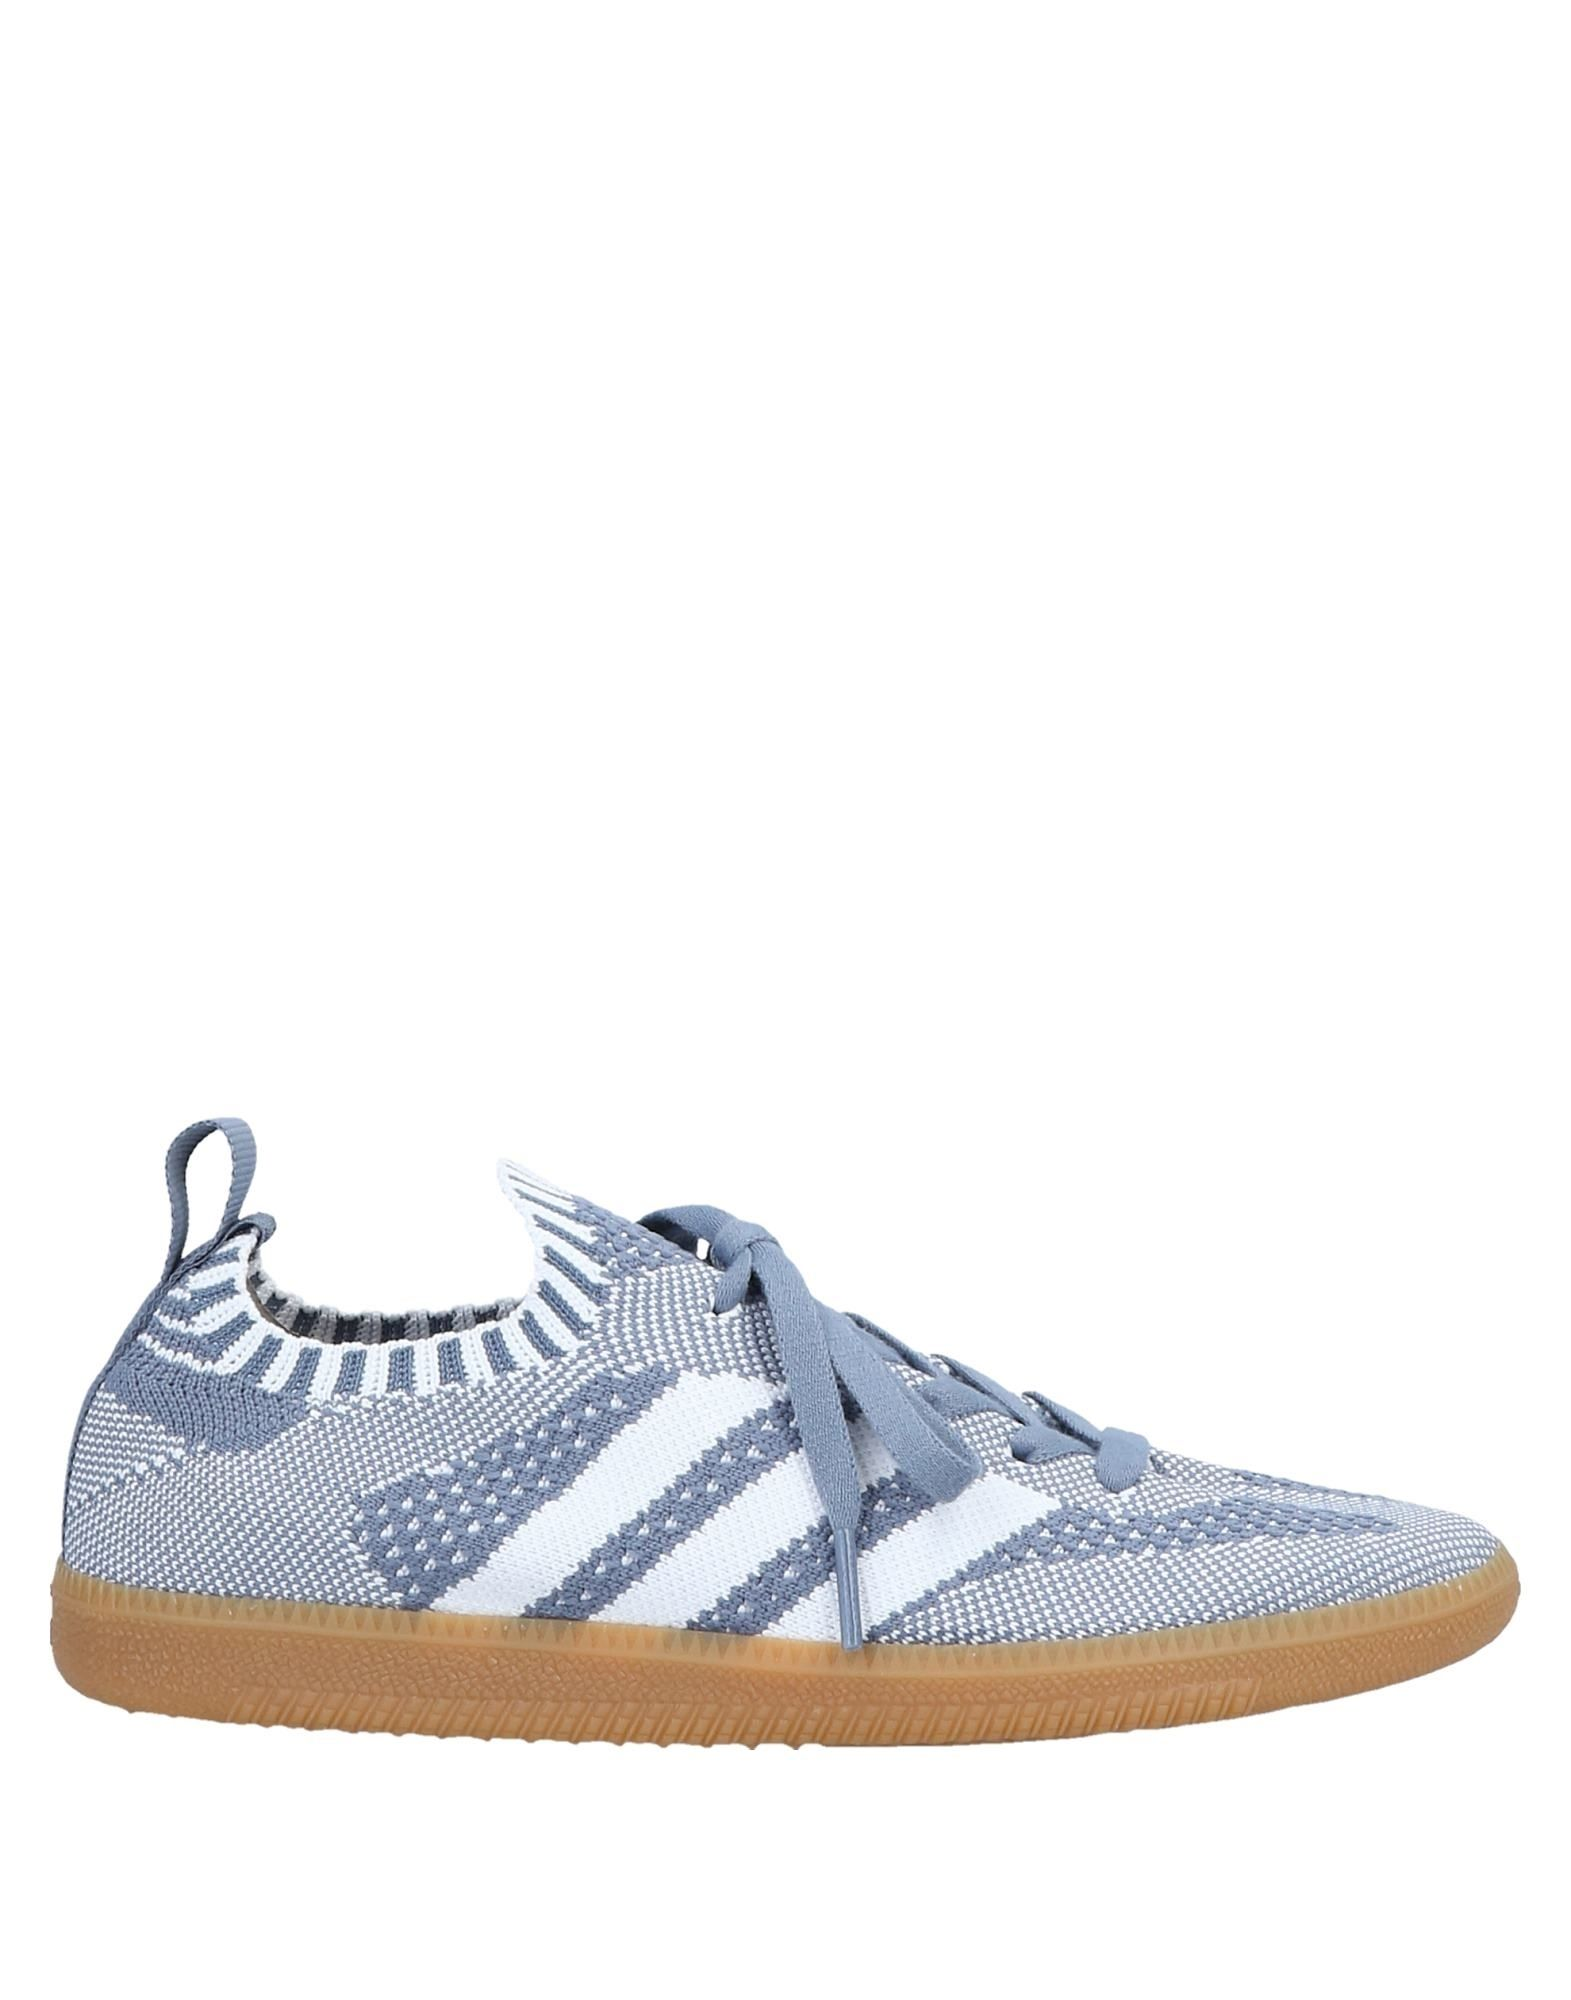 Adidas Originals Sneakers - Women Adidas Originals Sneakers Kingdom online on  United Kingdom Sneakers - 11563485XA 5cec47